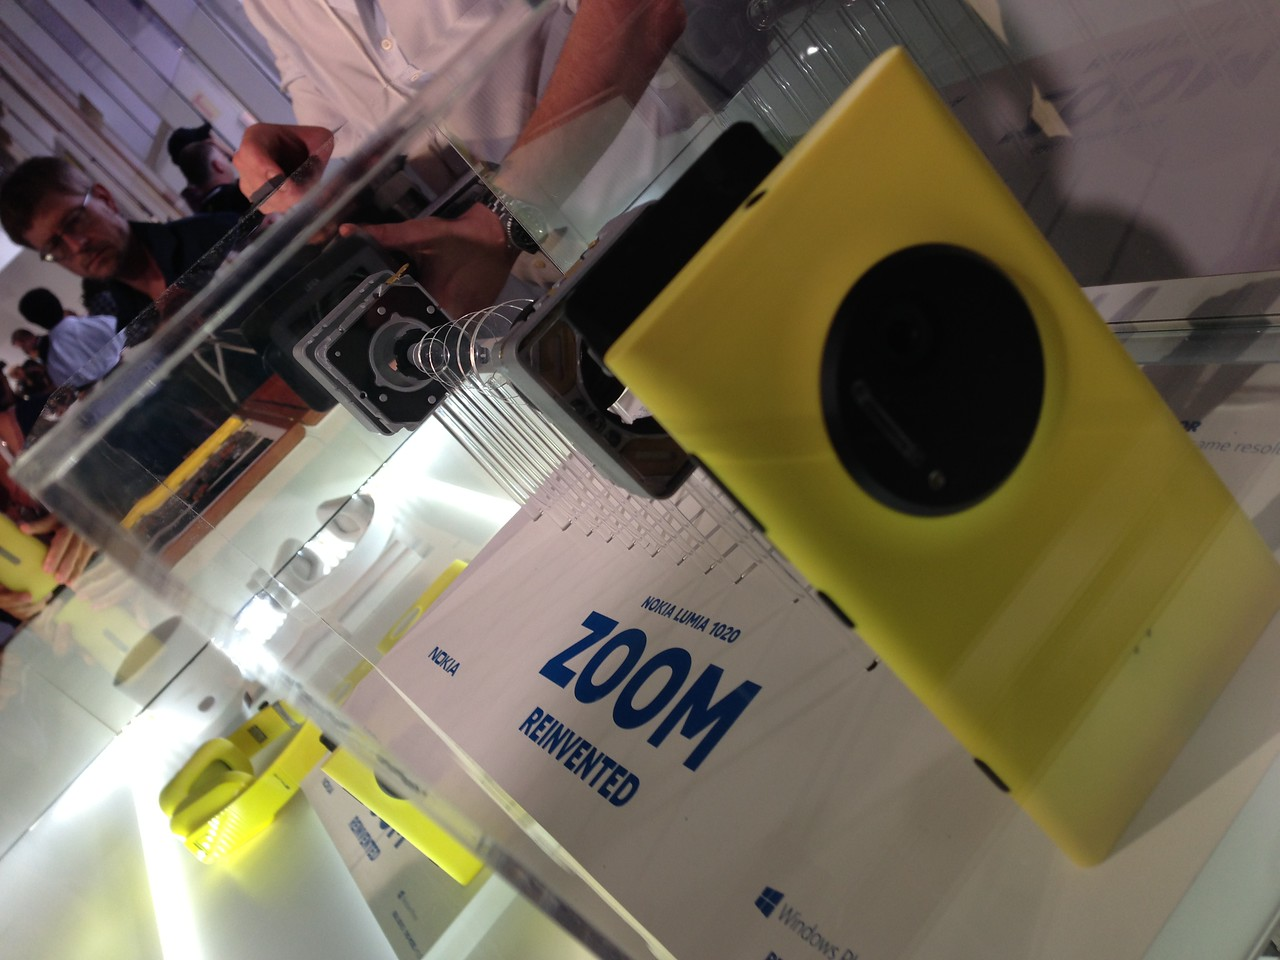 Another look inside the Lumia 1020.